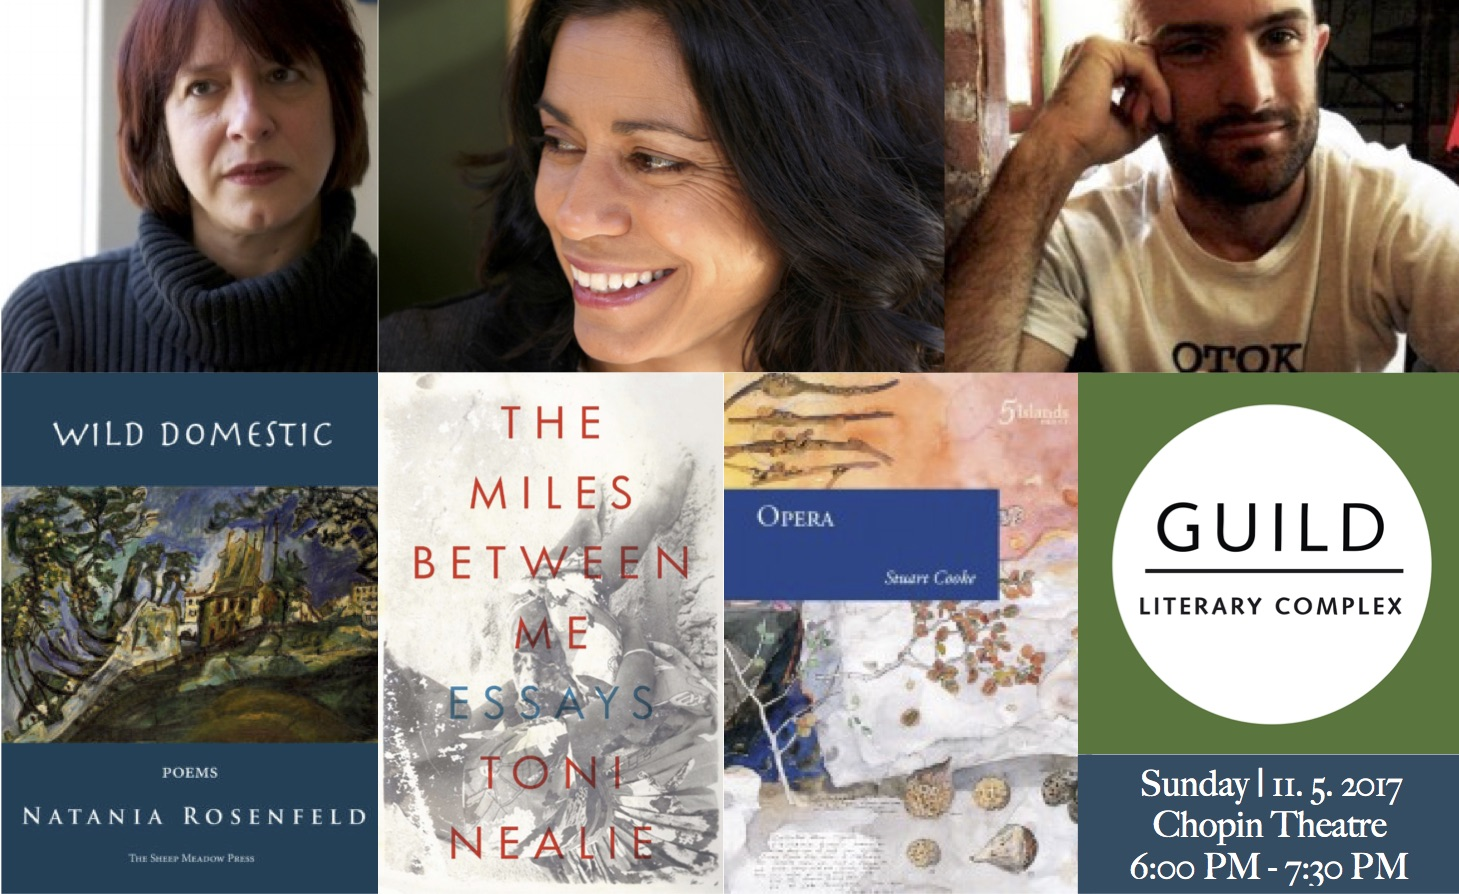 Transnational Poetics, Reading and Conversation | Chopin Theatre | Nov. 5, 2017 | 6:00 PM